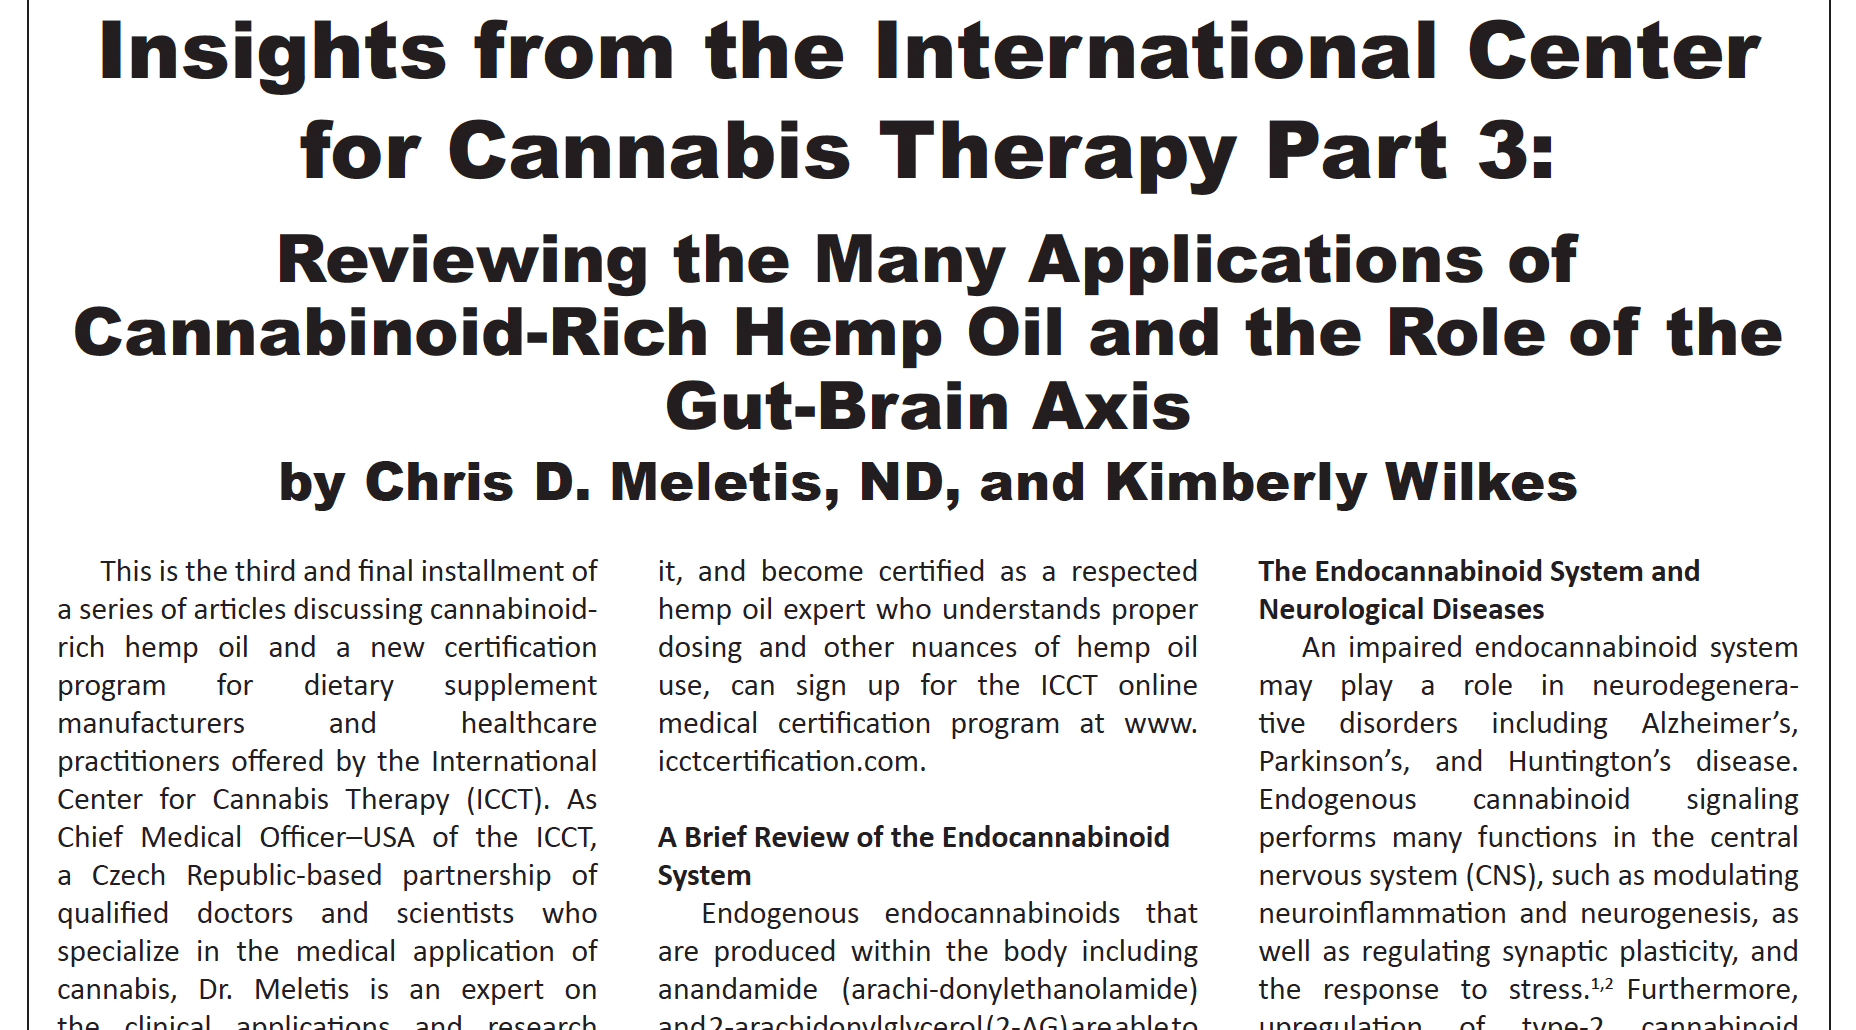 Insights from the International Center for Cannabis Therapy Part 3